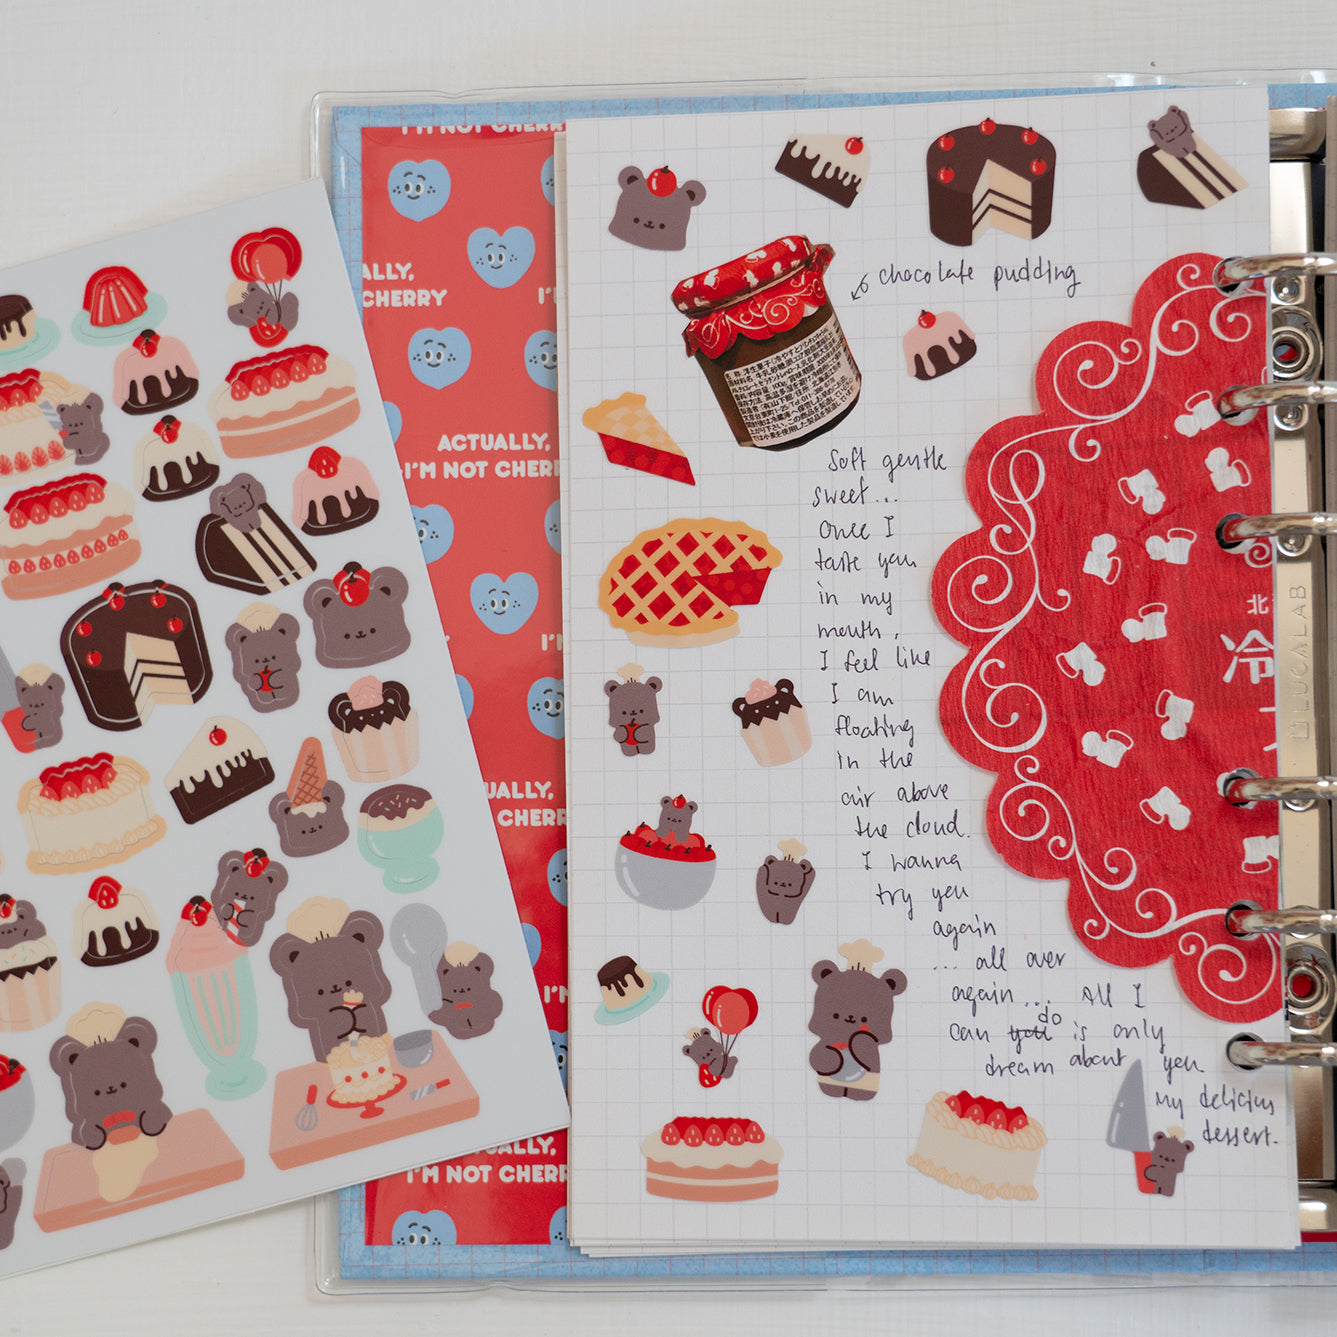 Bear bakery sticker sheet 2: bear bakery collection